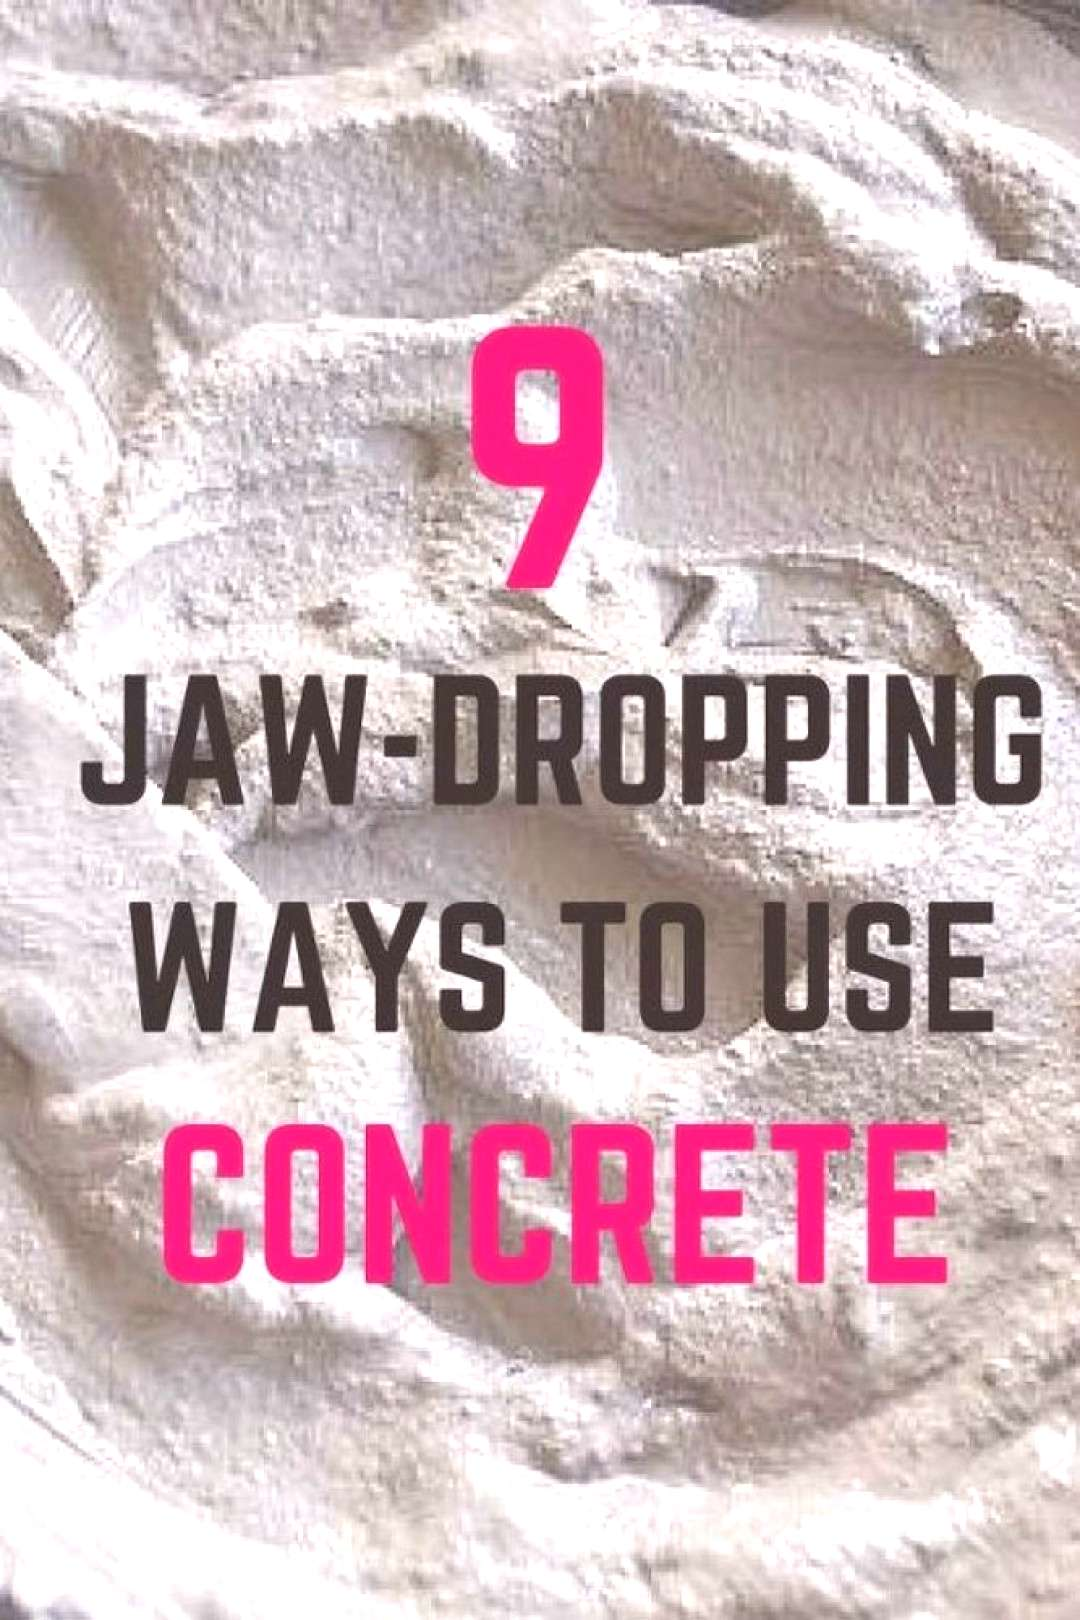 Honestly, we would never in a million years think of decorating our homes with concrete. Seeing tha